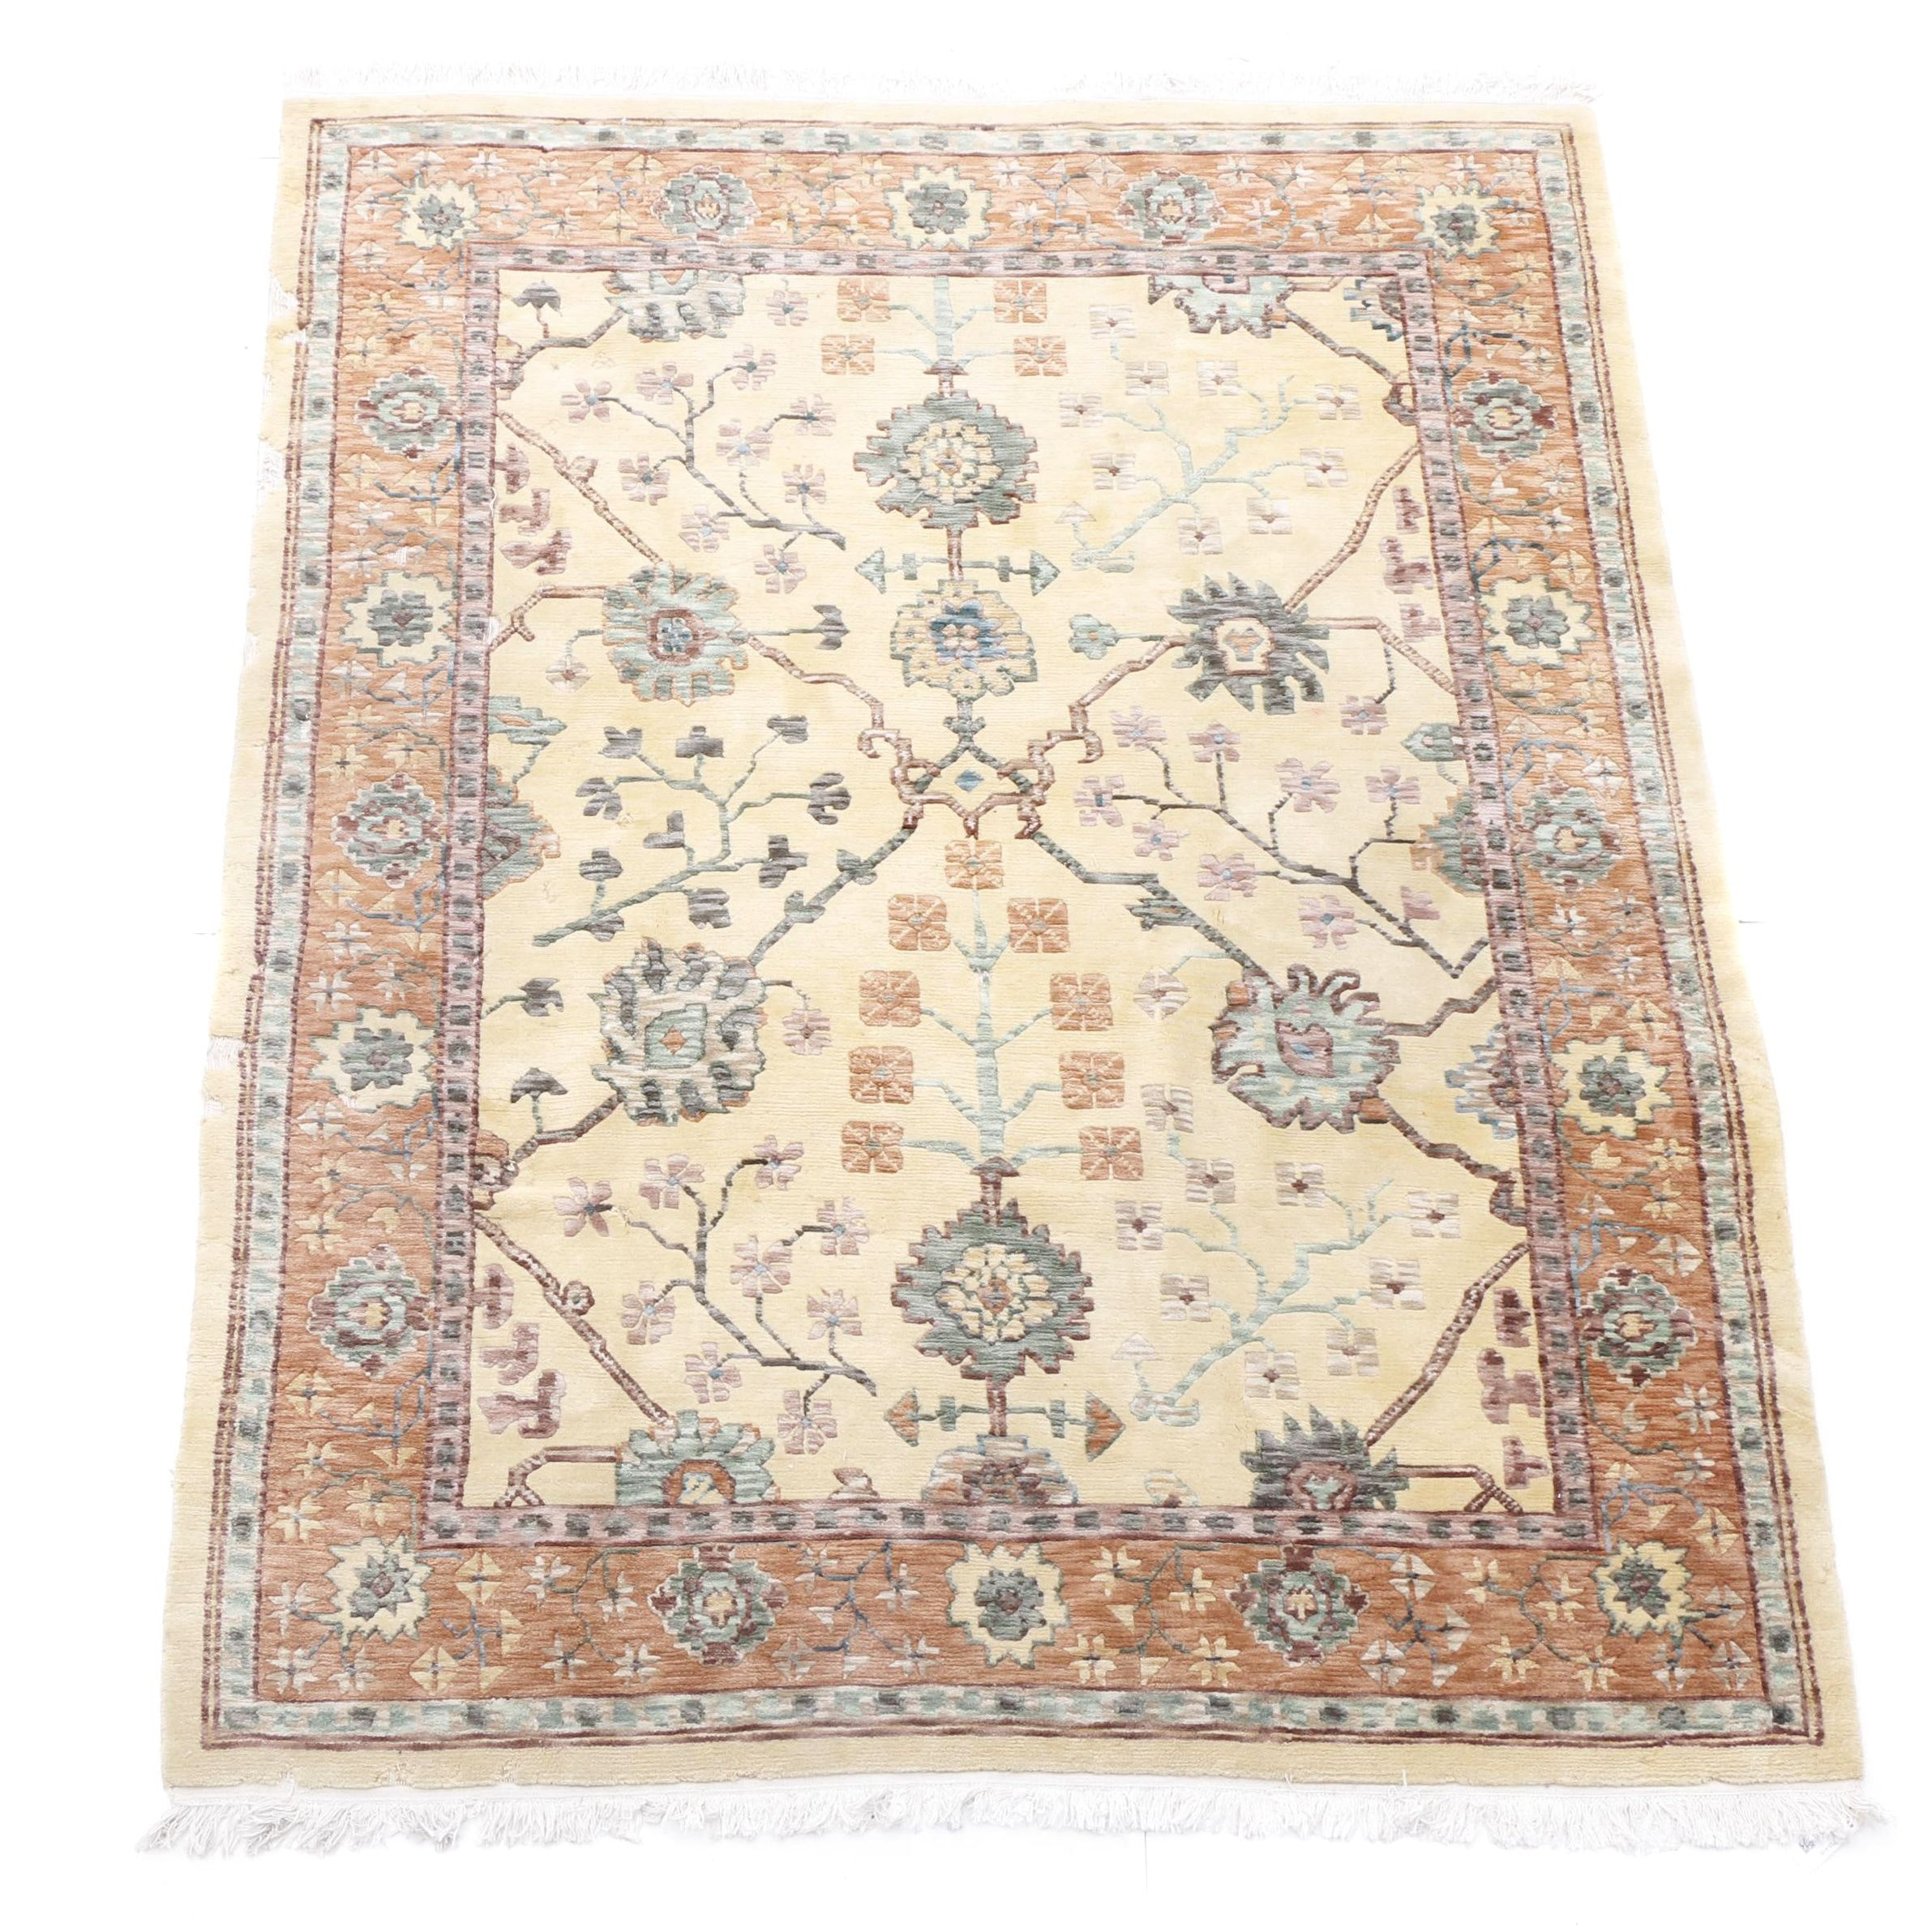 Hand-Knotted Indo-Turkish Wool Rug